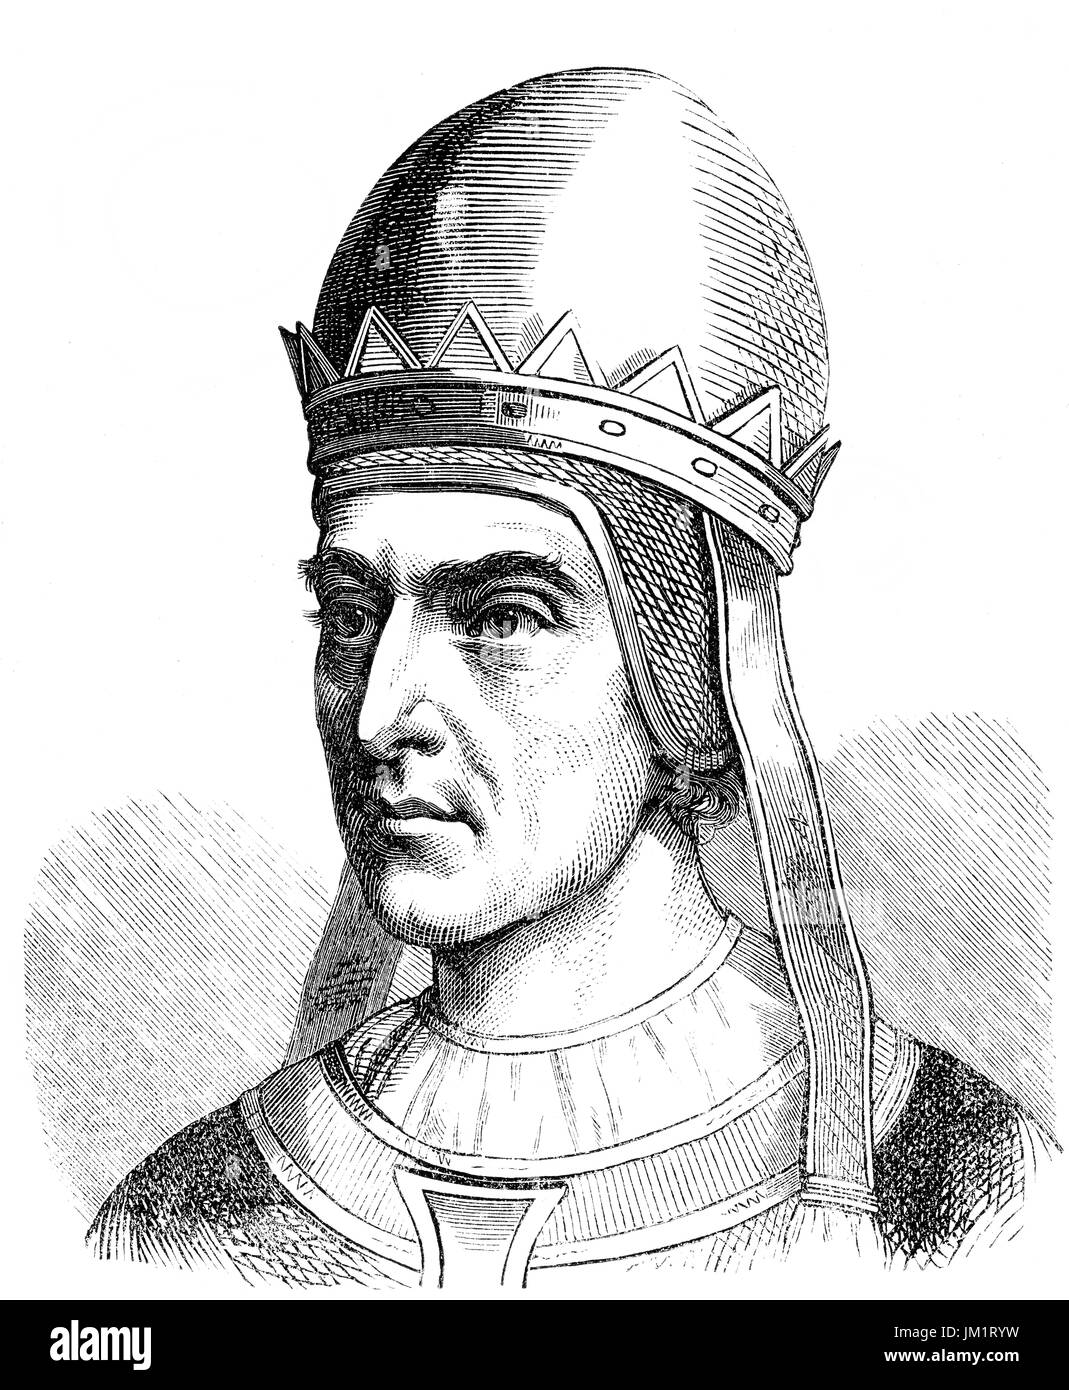 Gregory VII, c. 1015 – 1085, born Hildebrand of Sovana, was Pope from 22 April 1073 to his death in 1085 - Stock Image